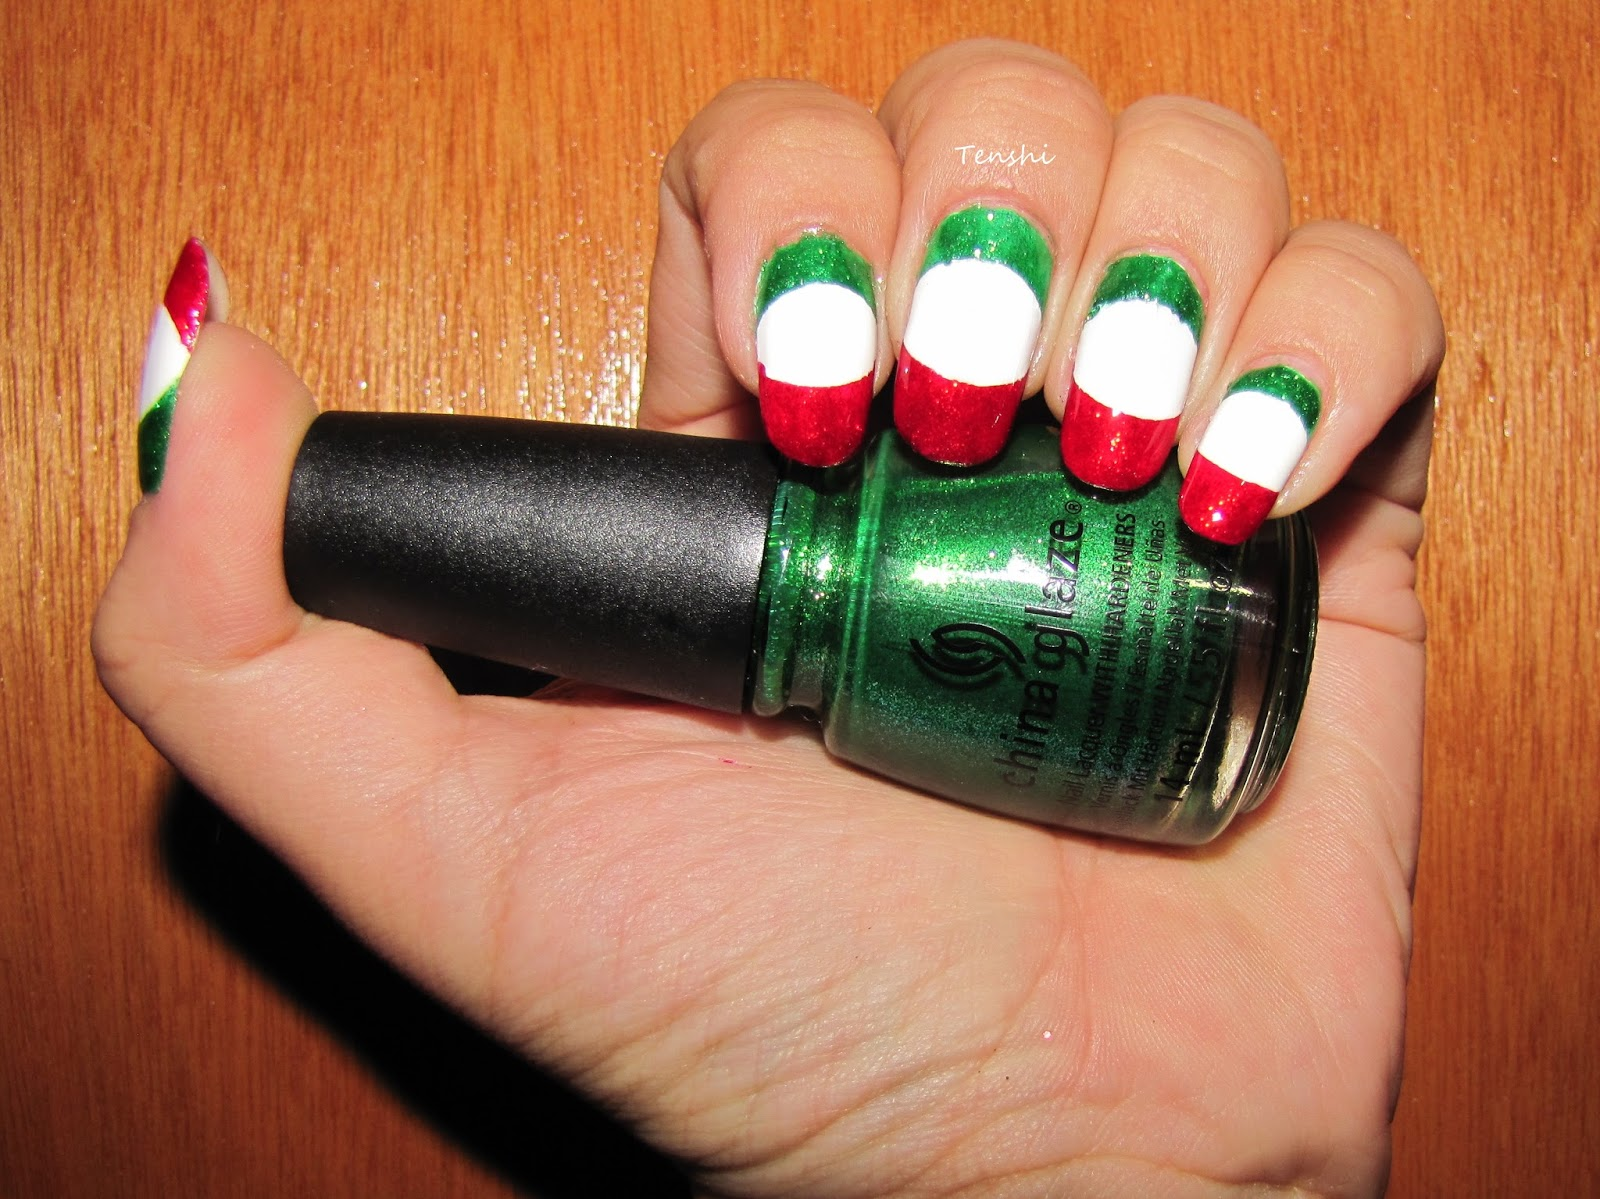 Nails by Tenshi: Uñas mexicanas